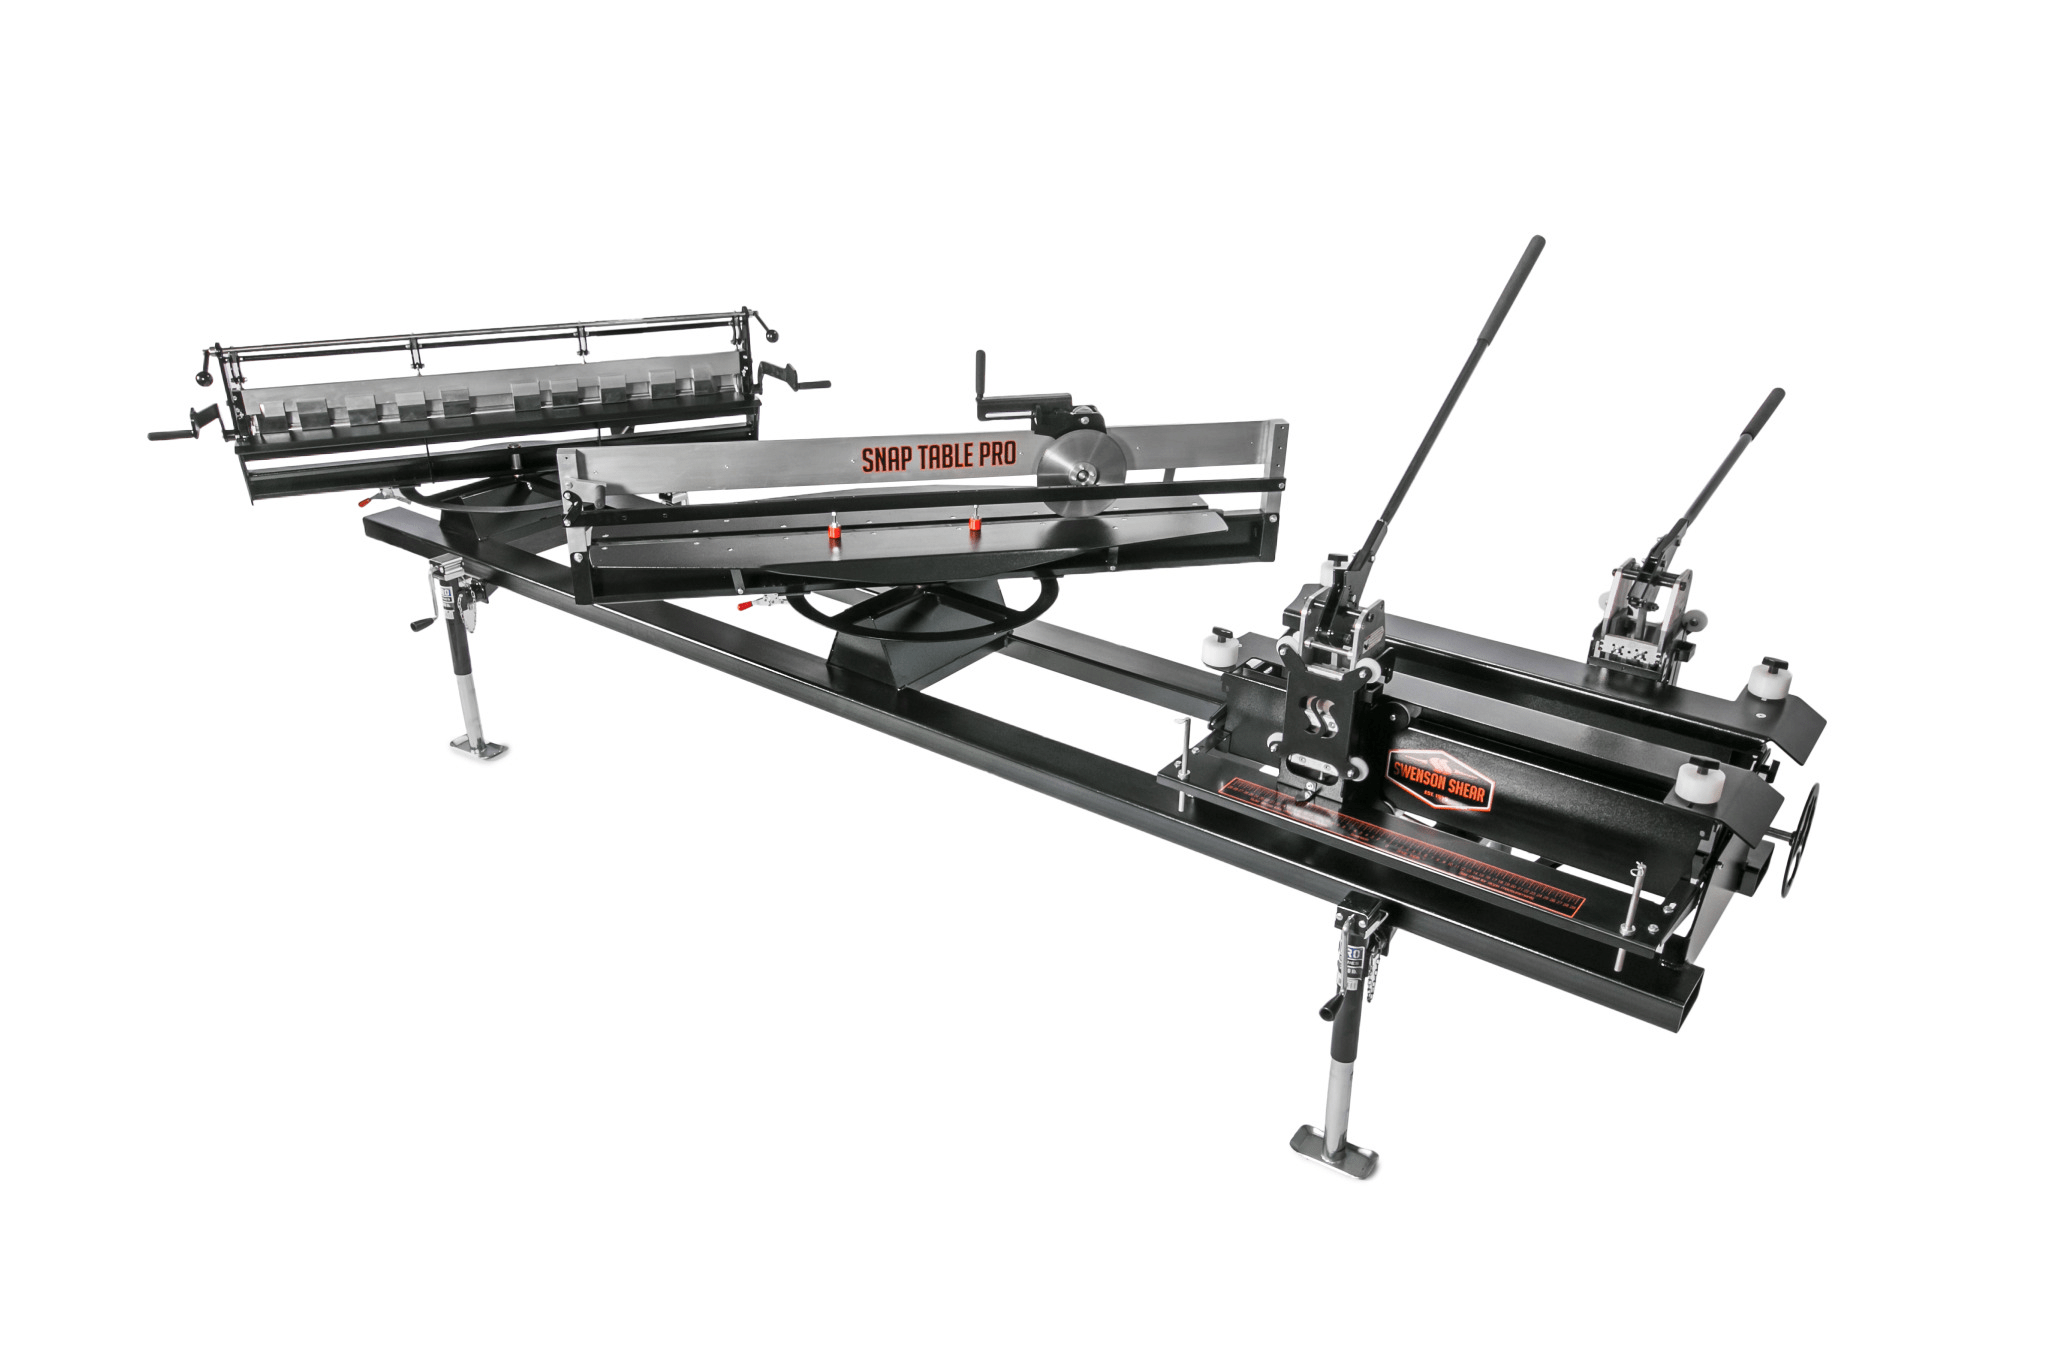 Swenson Shear's SnapTable PRO Is Equipped to Notch, Slit